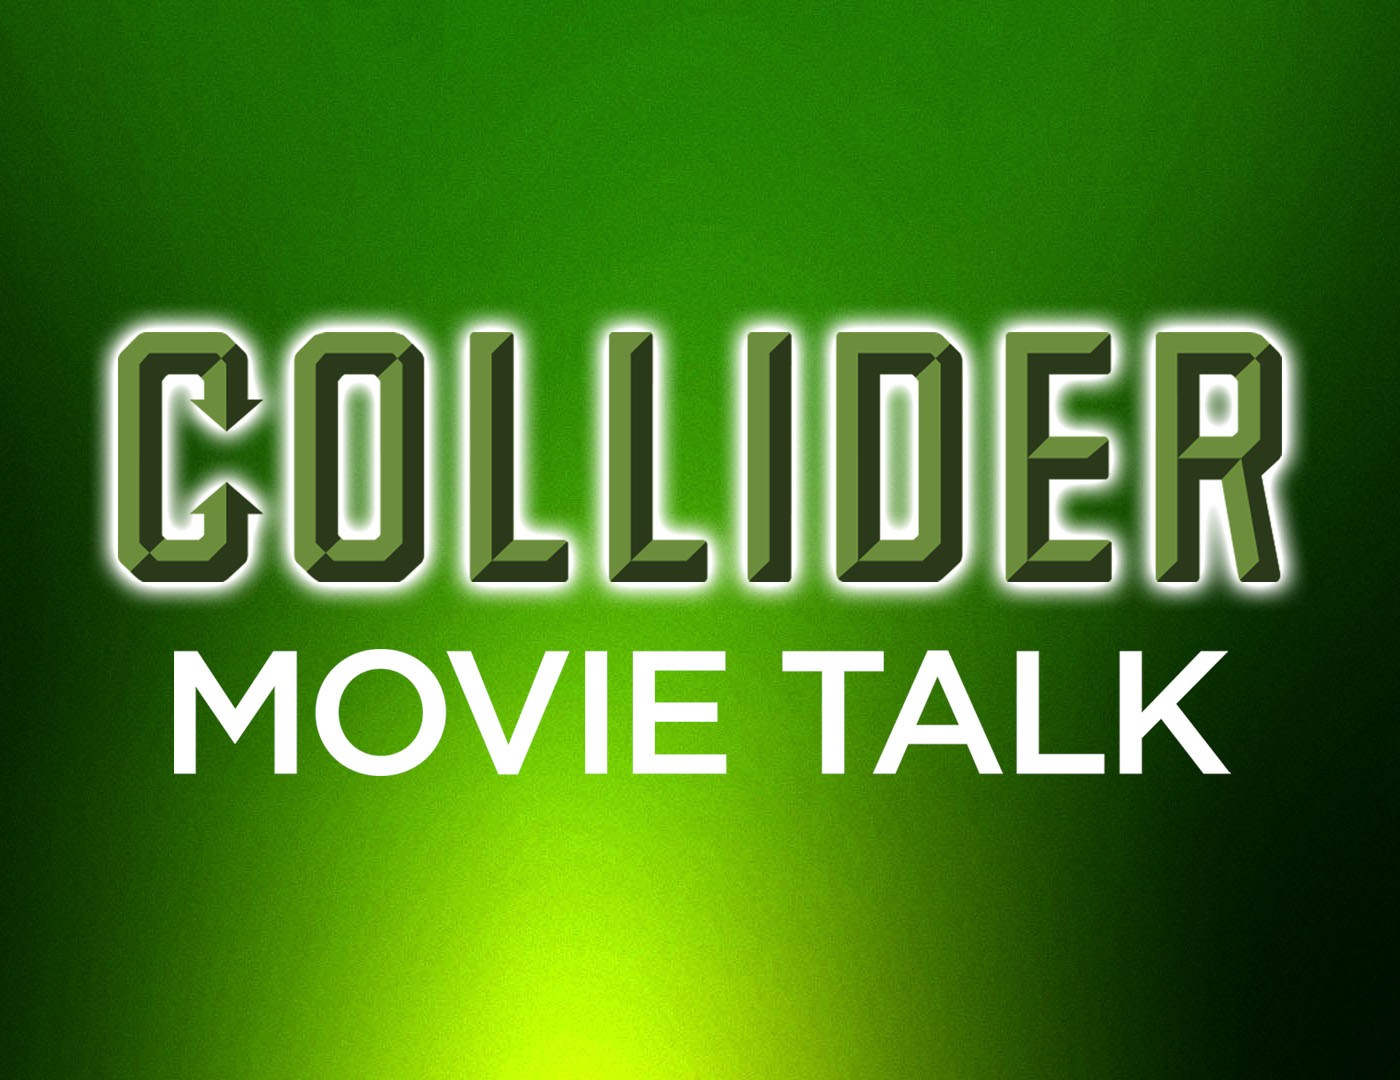 Ben Affleck Reveals Deathstroke As Villain For Batman Solo Movie? - Collider Movie Talk